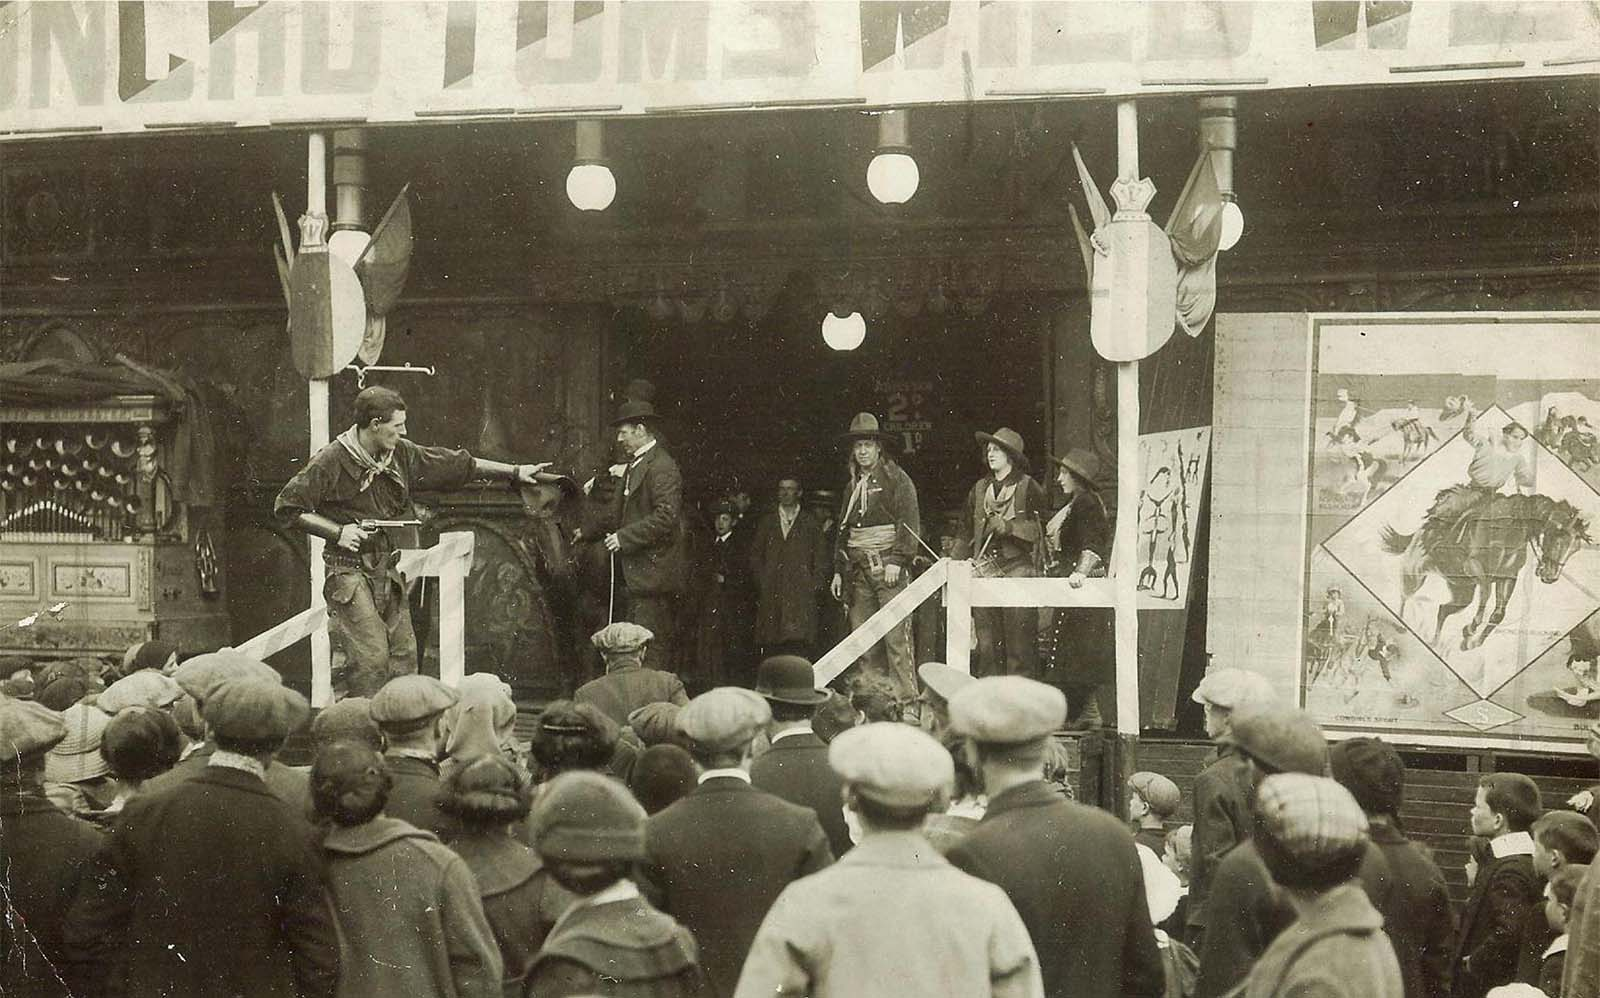 Montana Bill performing live in Broncho Tom's Wild West Show, Vinegarhill (Gallowgate) Fairground, Glasgow, 1915. Courtesy Tom F. Cunningham at snbba.co.uk.